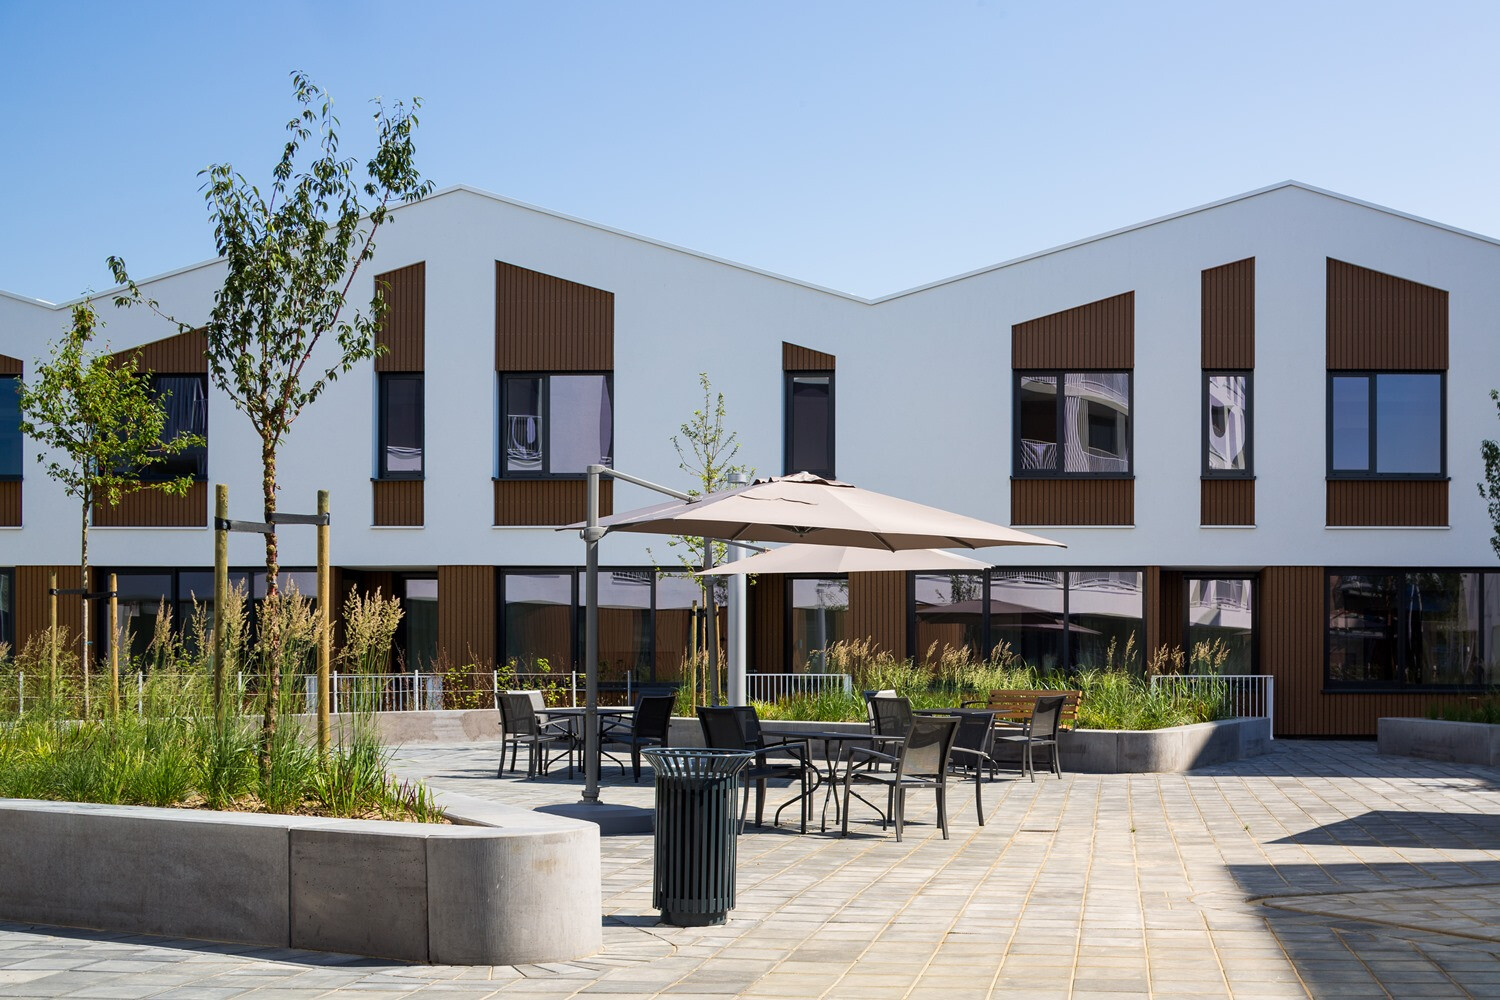 Housing and health care complex Eltheto for the next generation of elderly